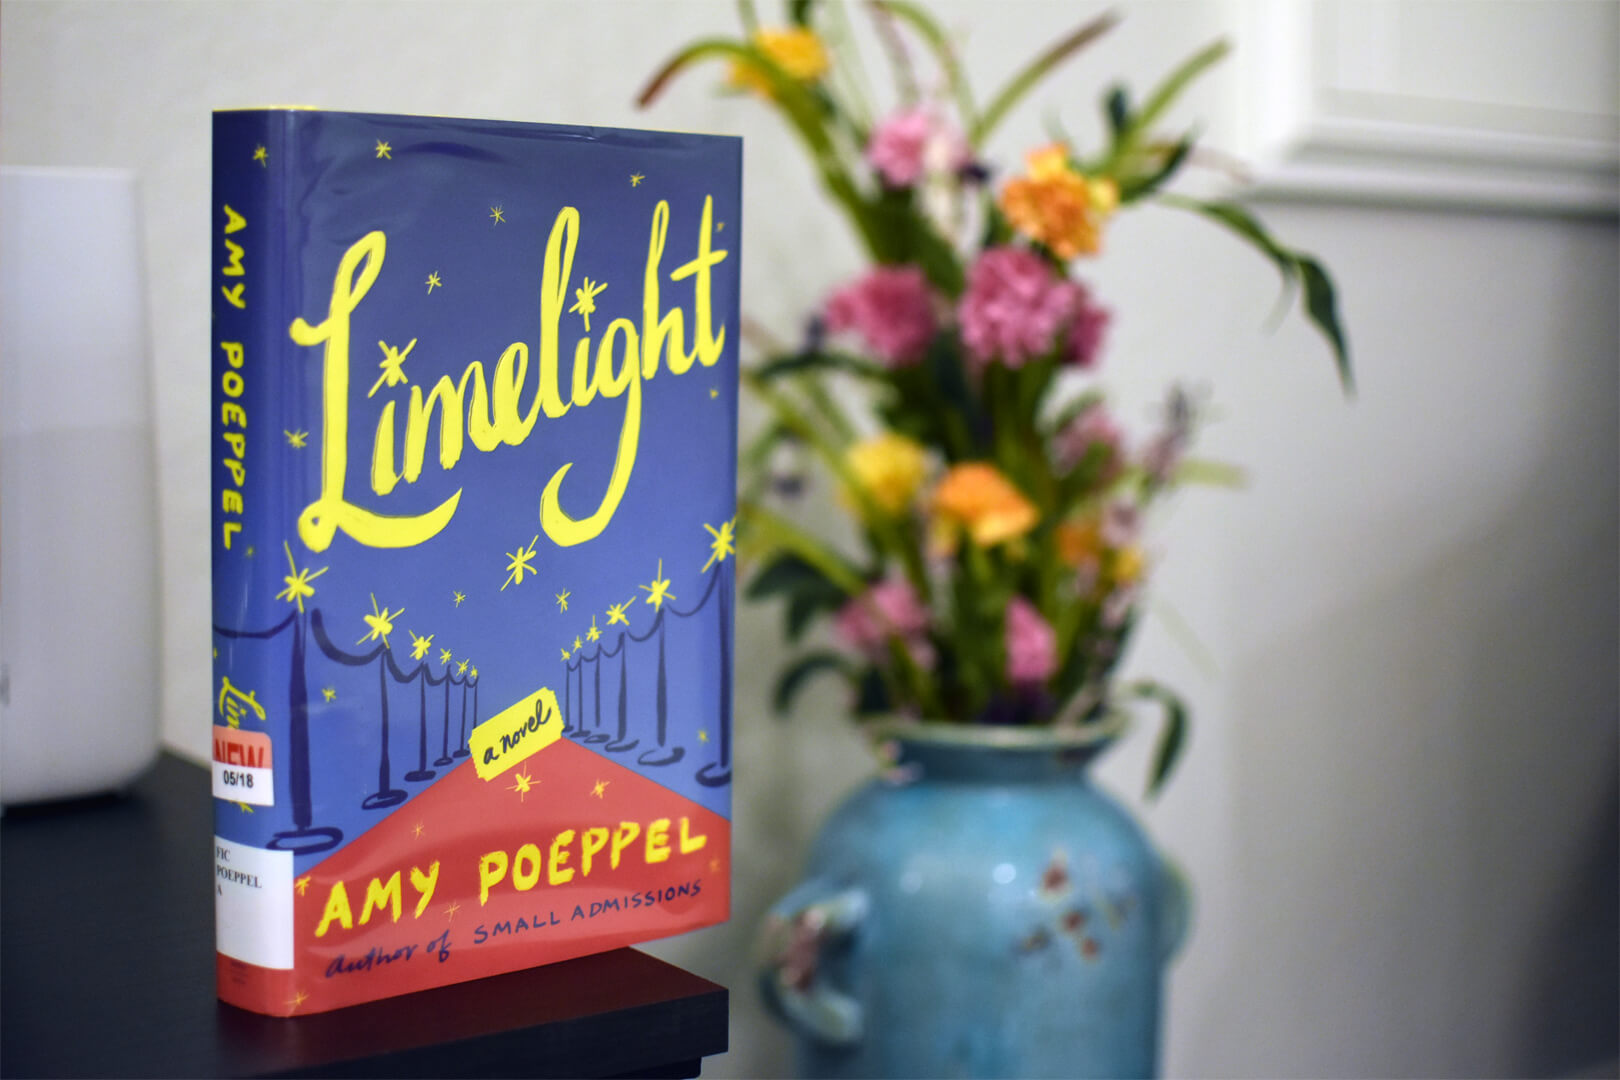 Limelight Review - Book Club Chat